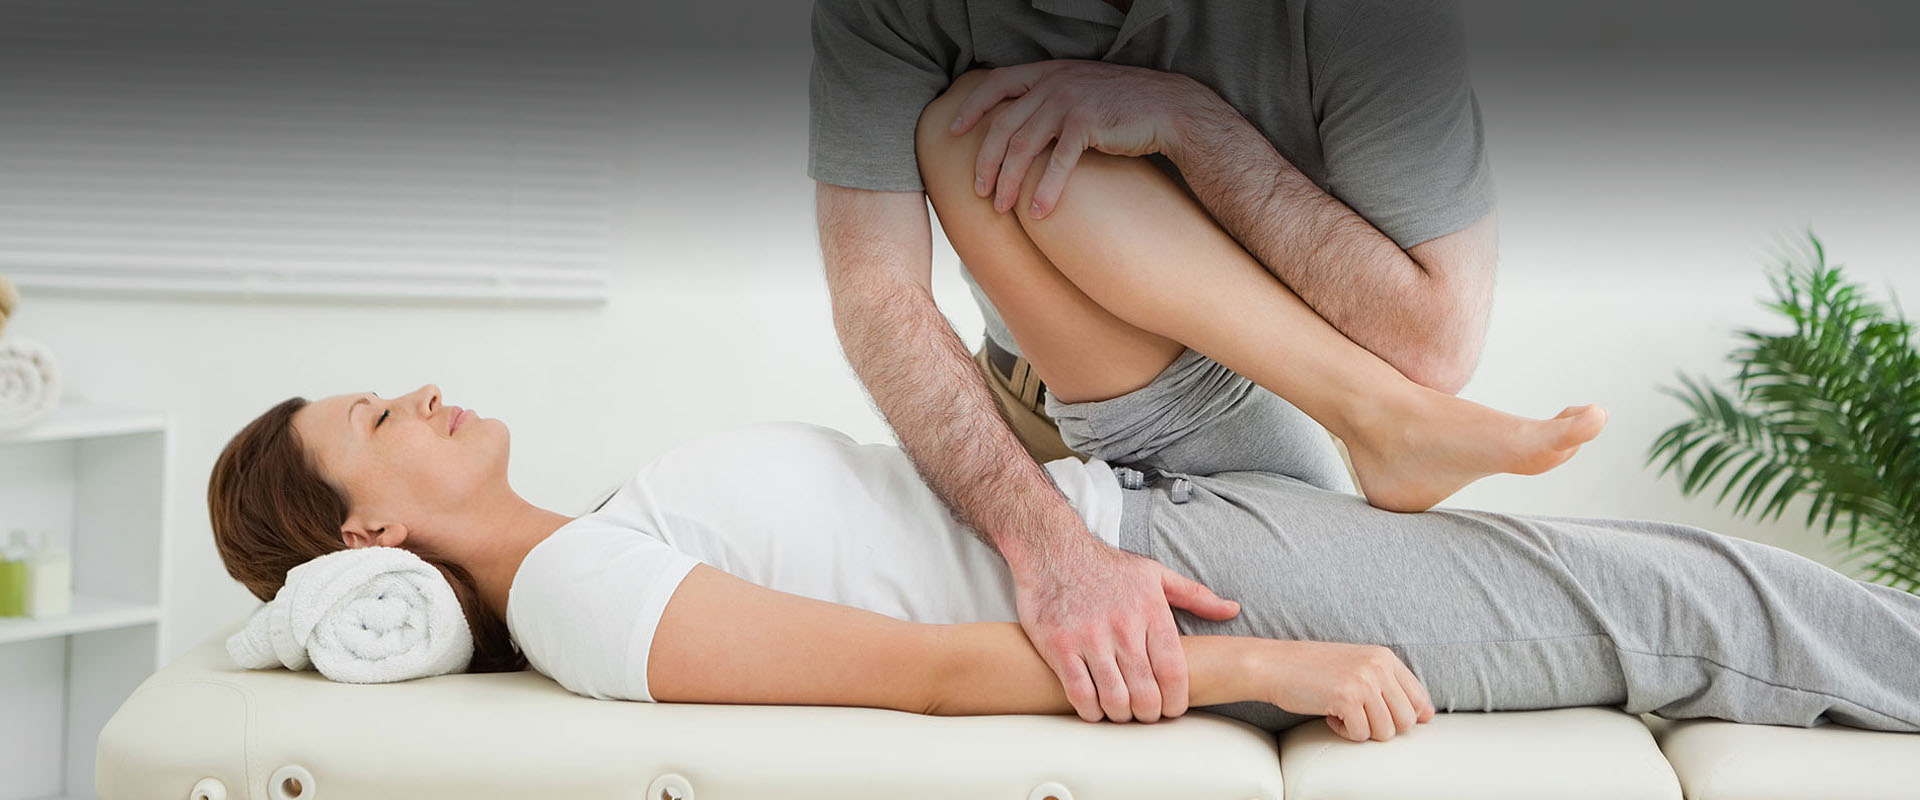 woman patient receiving manual physiotherapy to knee